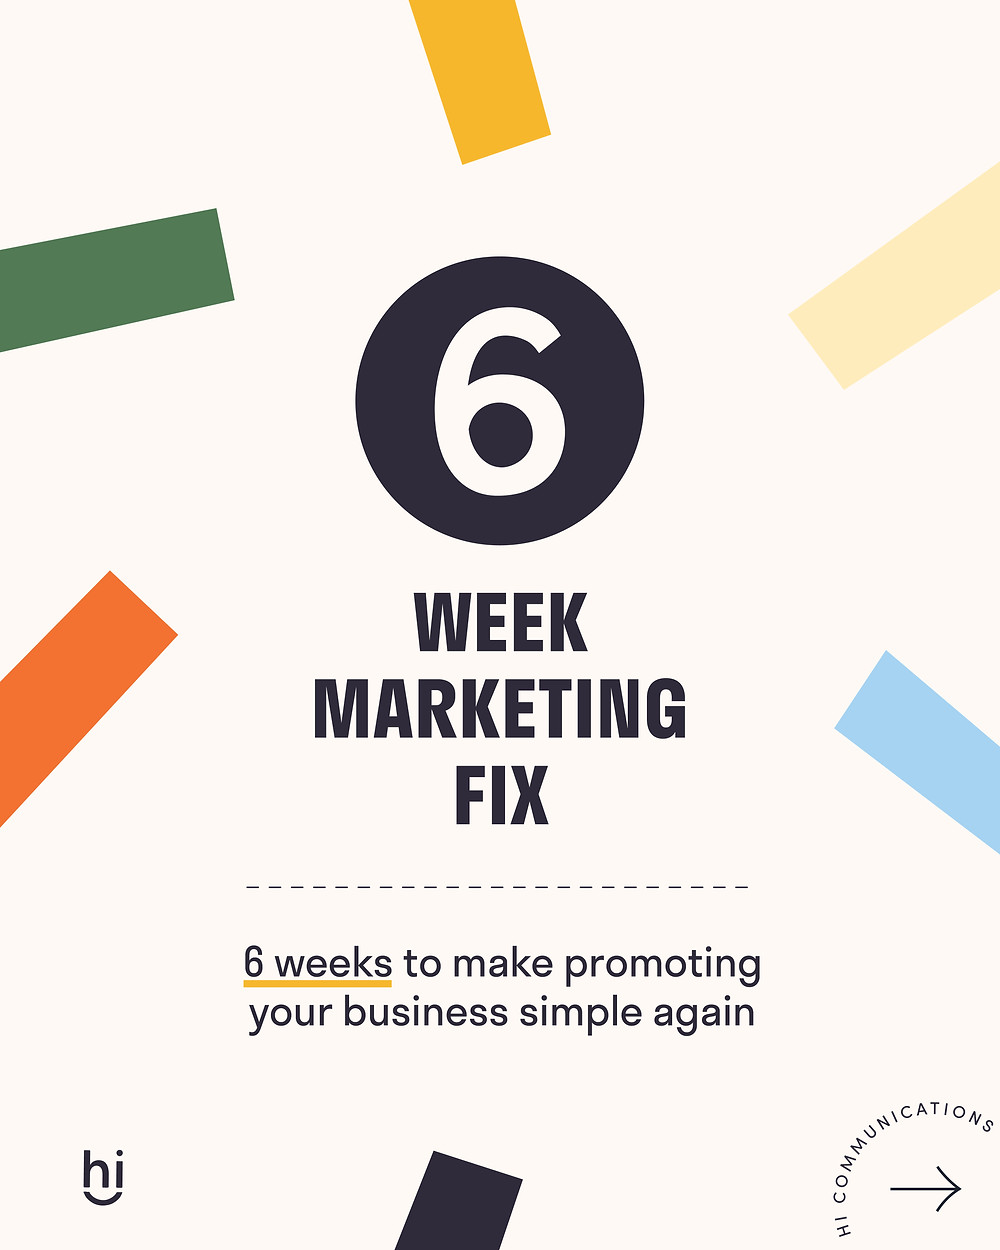 The Six Week Marketing Fix by Hannah Isted